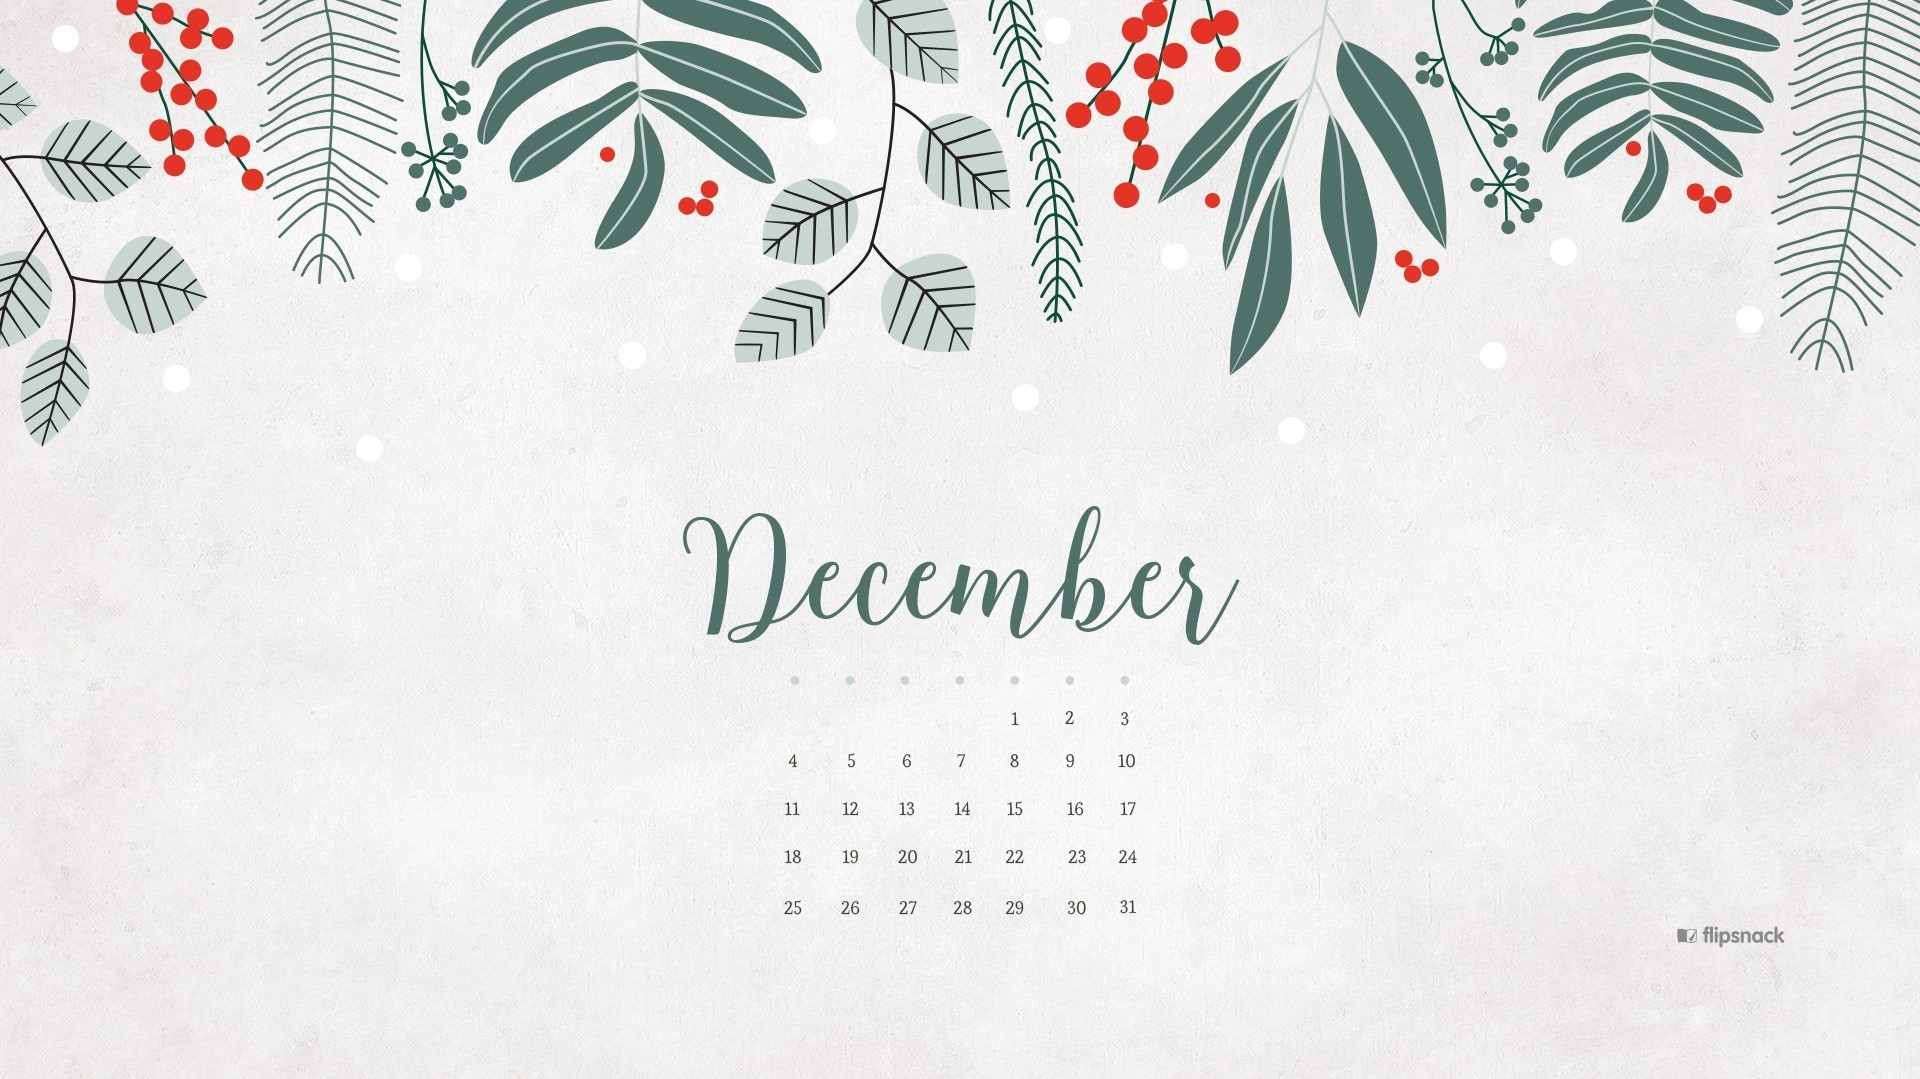 december 2017 desktop calendar wallpaper - wallpaper rocket